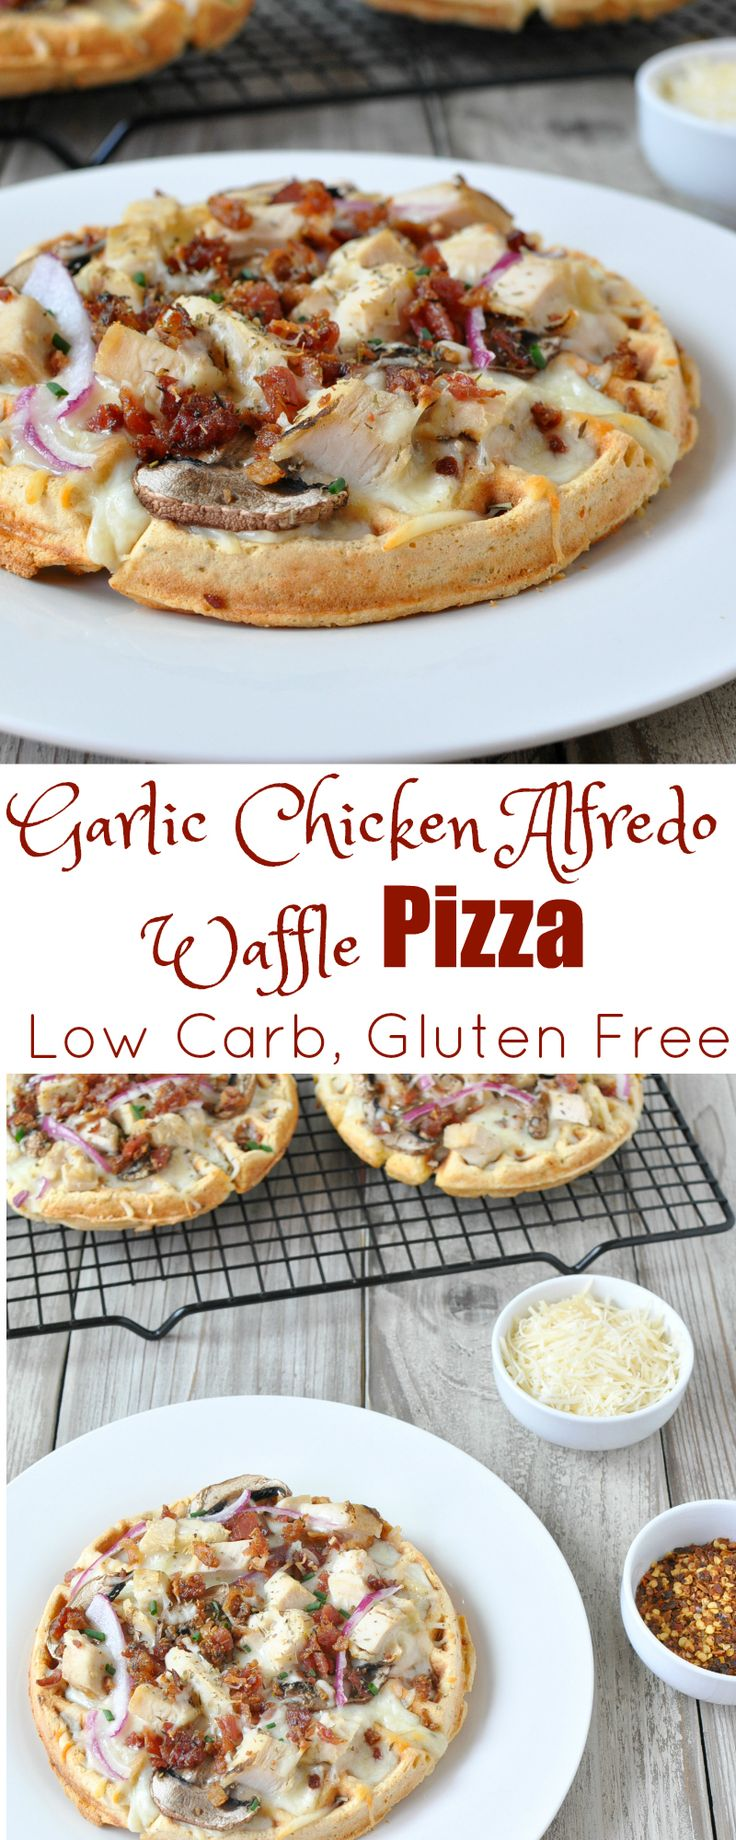 Low Carb Garlic Chicken Alfredo Waffle Pizza - Gluten Free | Peace Love and Low Carb  via @PeaceLoveLoCarb